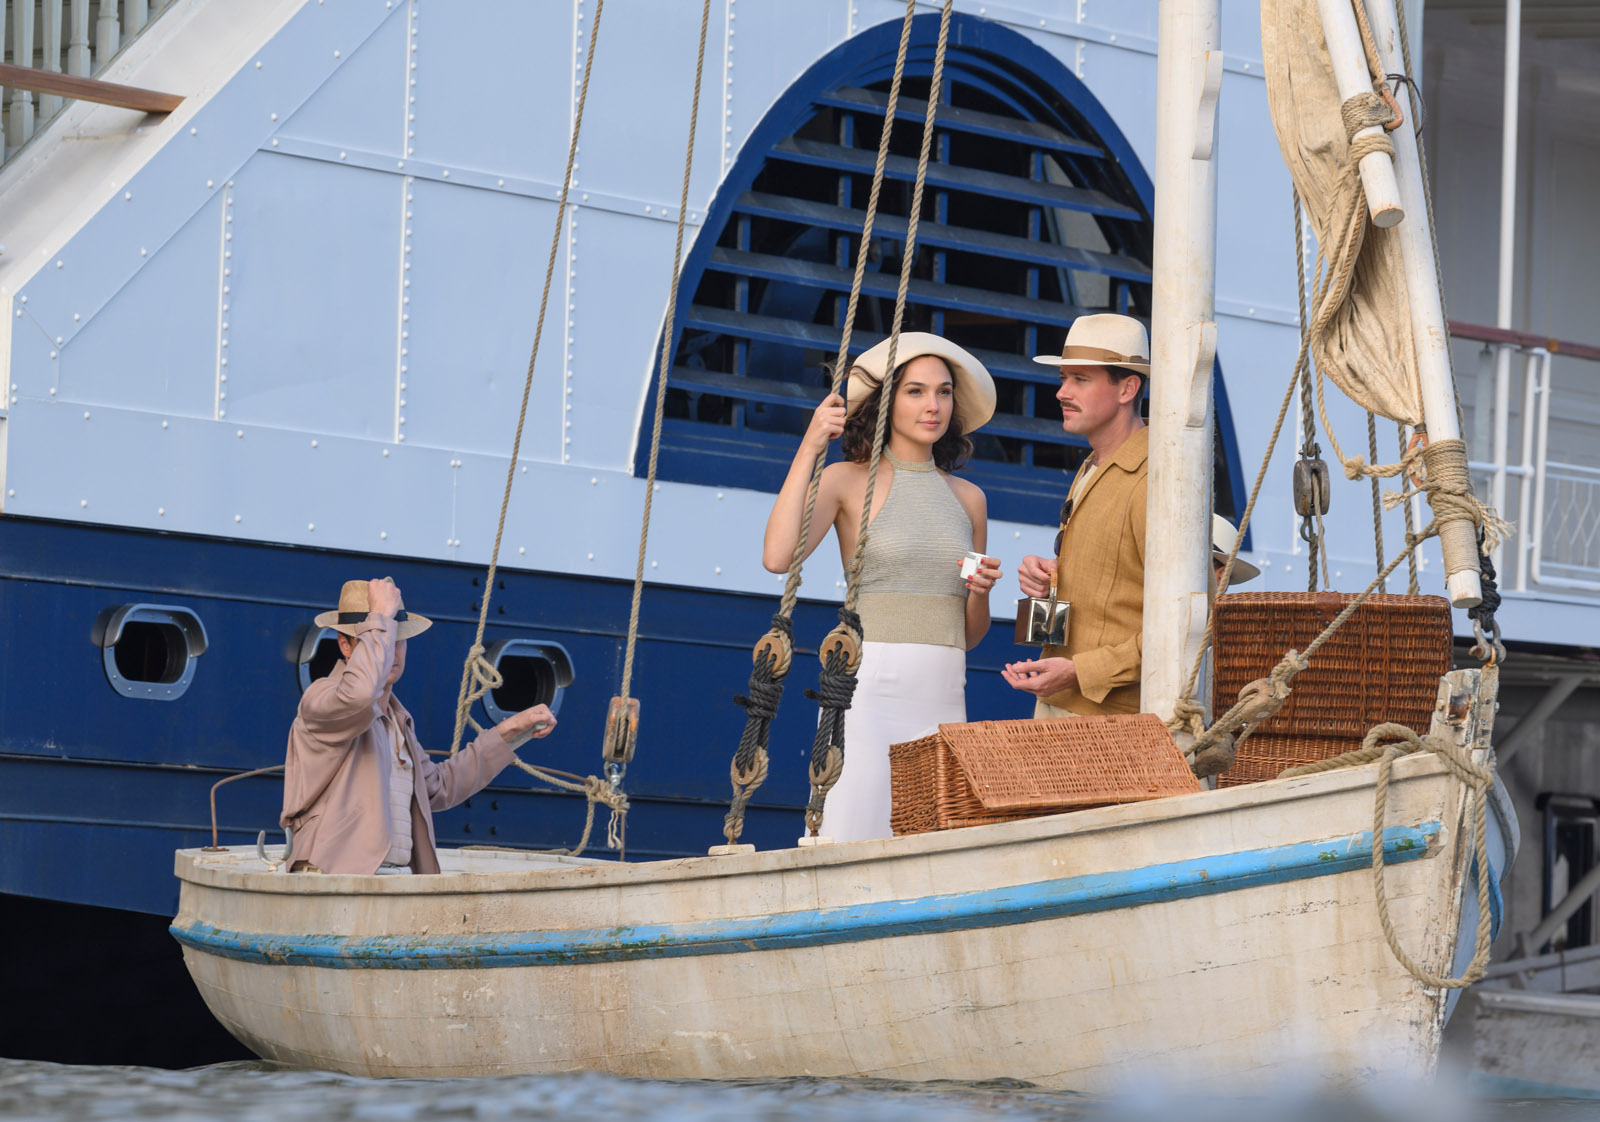 Gal Gadot as Linnet Ridgeway and Armie Hammer as Simon Doyle in 20th Century Studios' DEATH ON THE NILE, a mystery-thriller directed by Kenneth Branagh based on Agatha Christie's 1937 novel. Photo by Rob Youngson. © 2020 Twentieth Century Fox Film Corporation. All Rights Reserved.